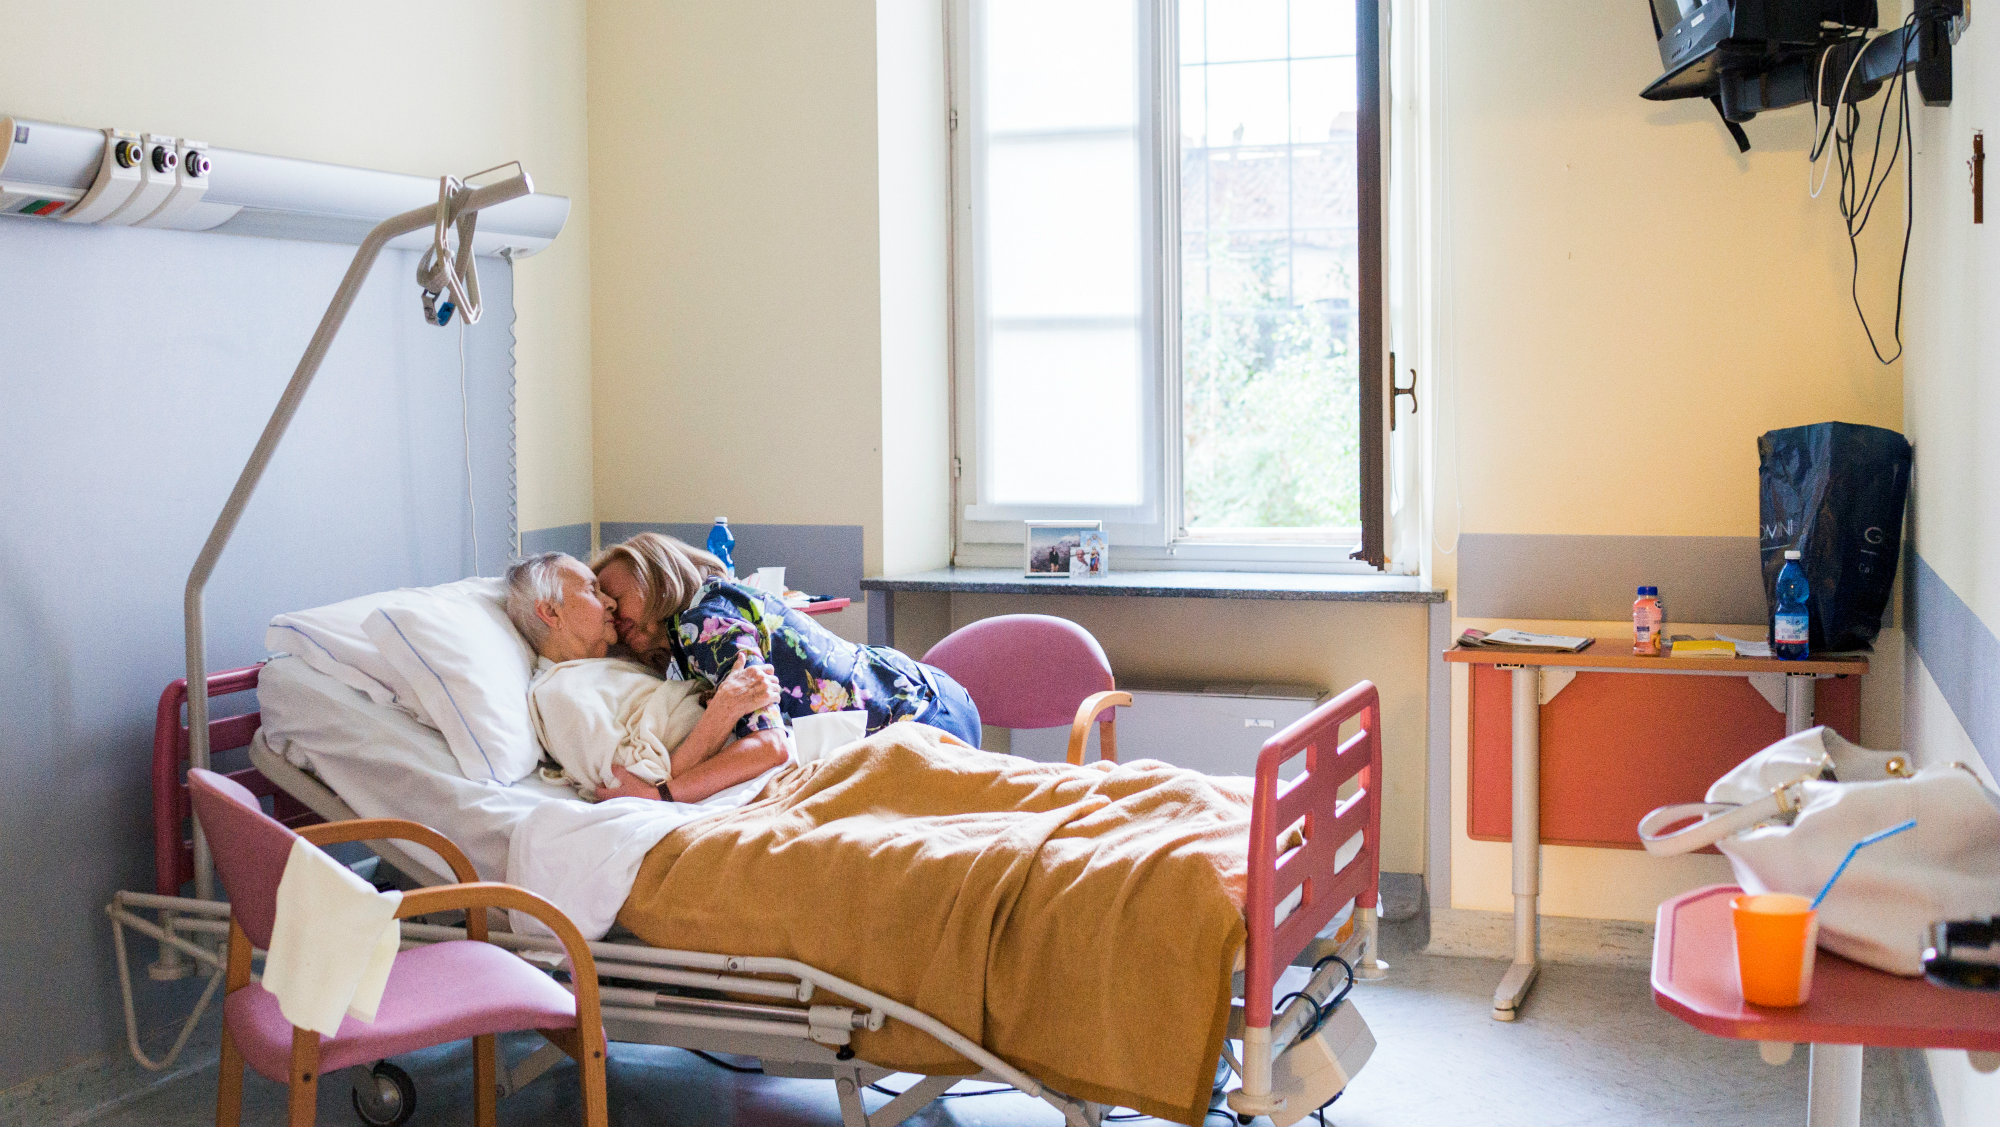 Chiara Micheletti embraces her mother Marisa Vesco in her room at a hospice where she stayed for a month and a half before her death in Biella, Italy, August 21, 2015.